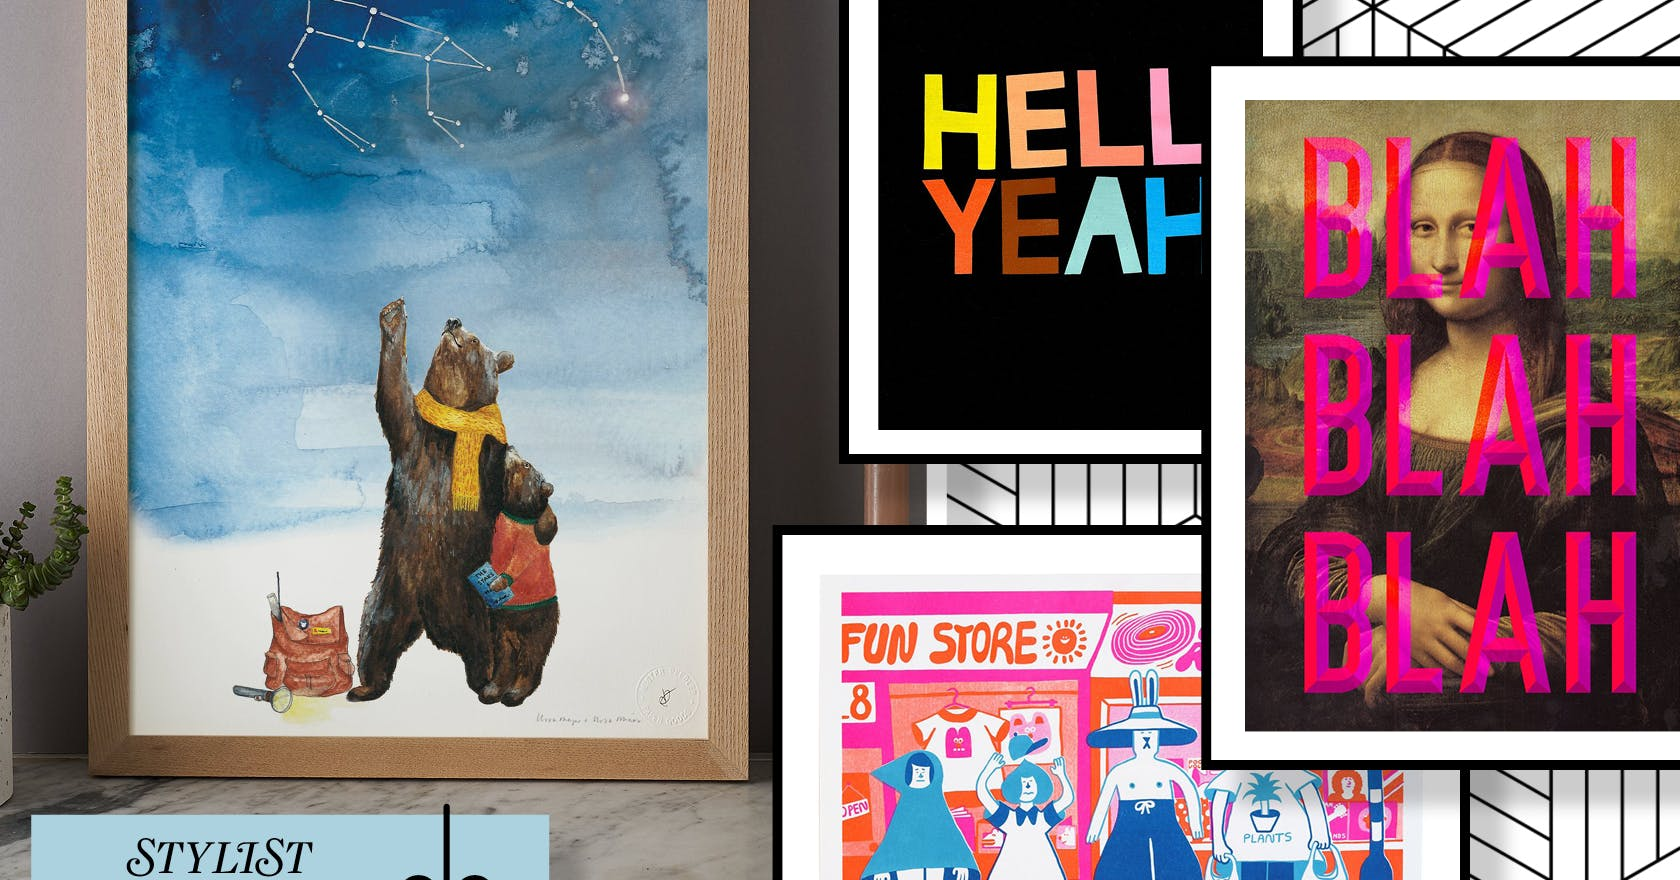 22 beautiful art prints that would make perfect Christmas gifts, to suit all styles and budgets